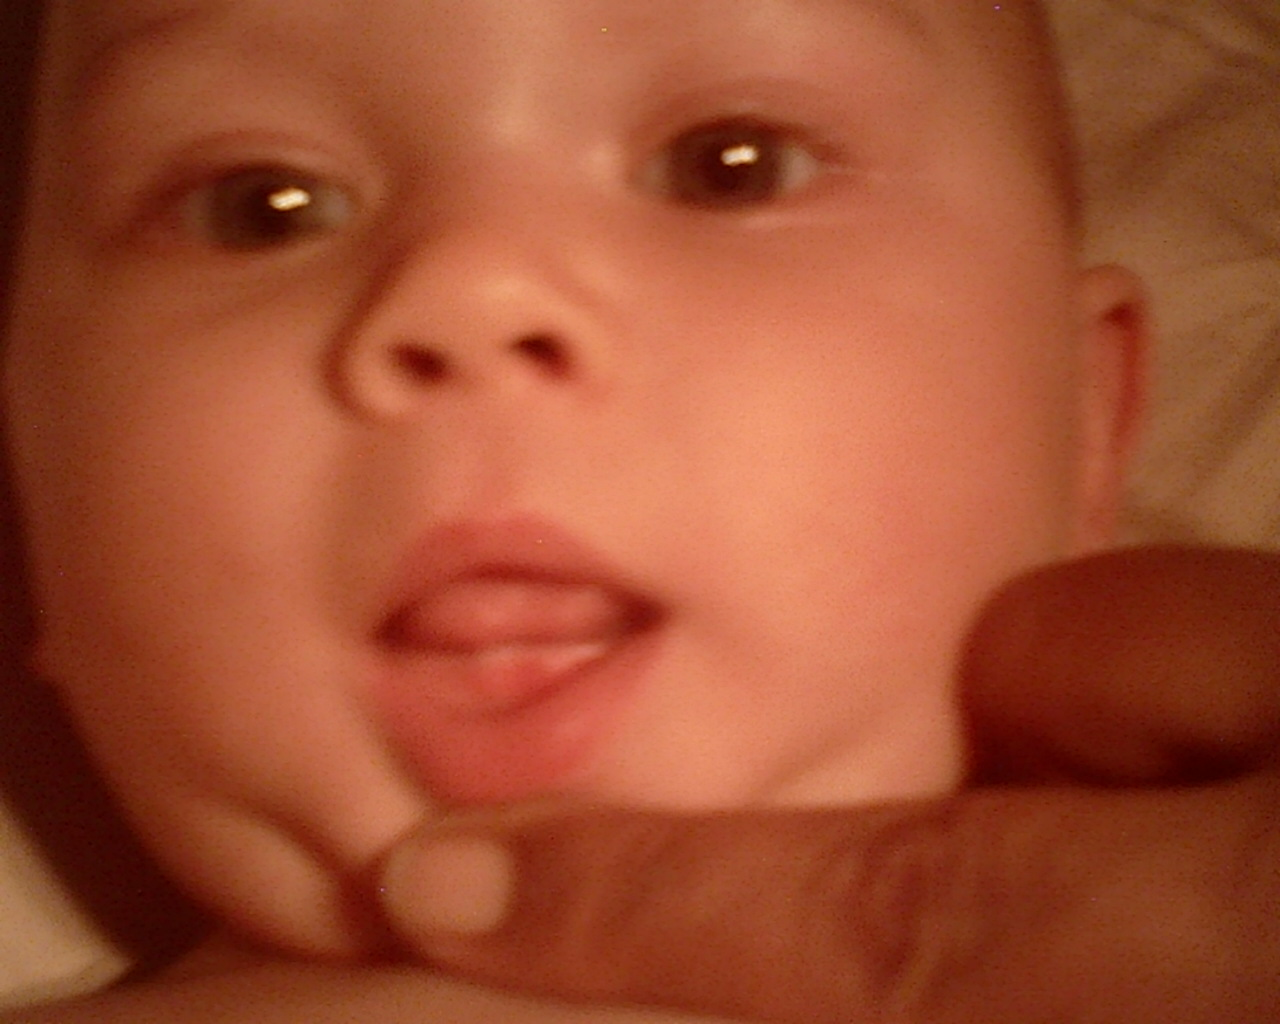 Teething, First Baby Tooth Coming in at 8 months August 2011 - Mother Baby Child